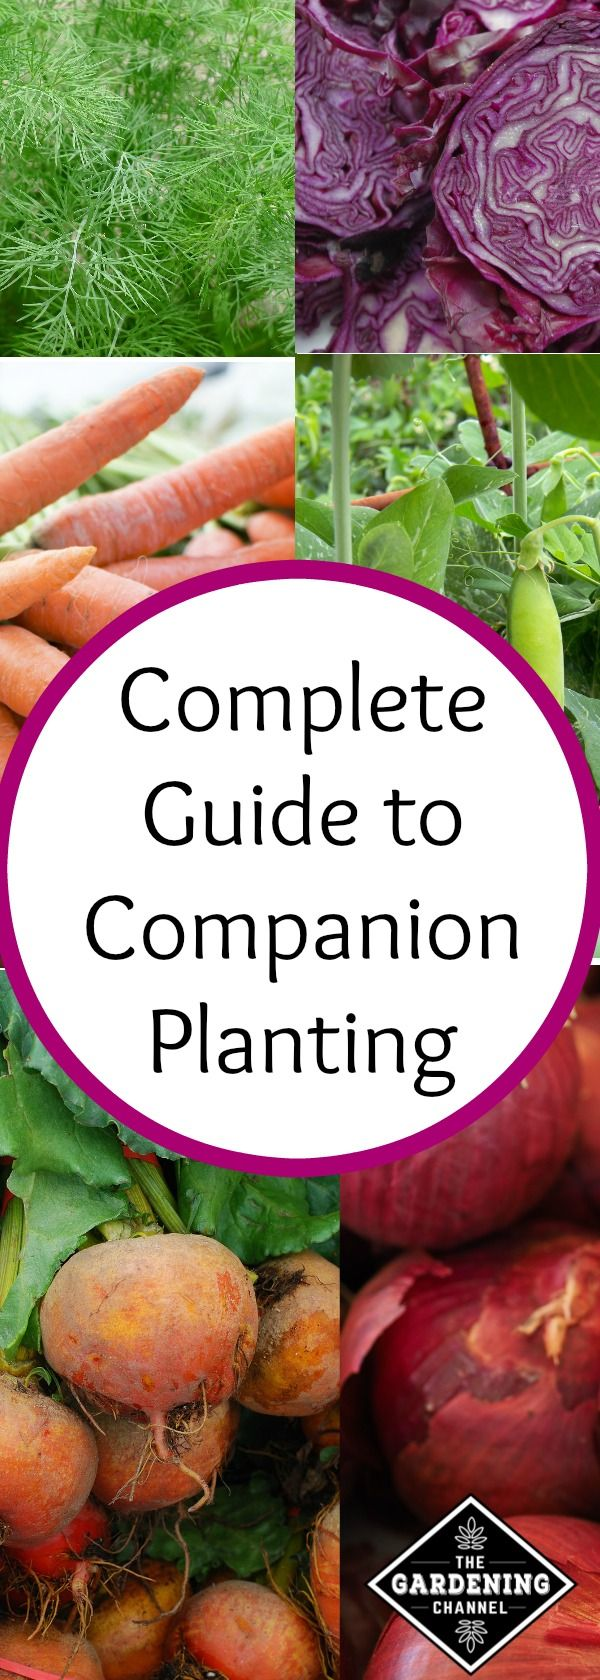 Learn which plants you should plant together in your garden to get the best crop with the least risk of pests.